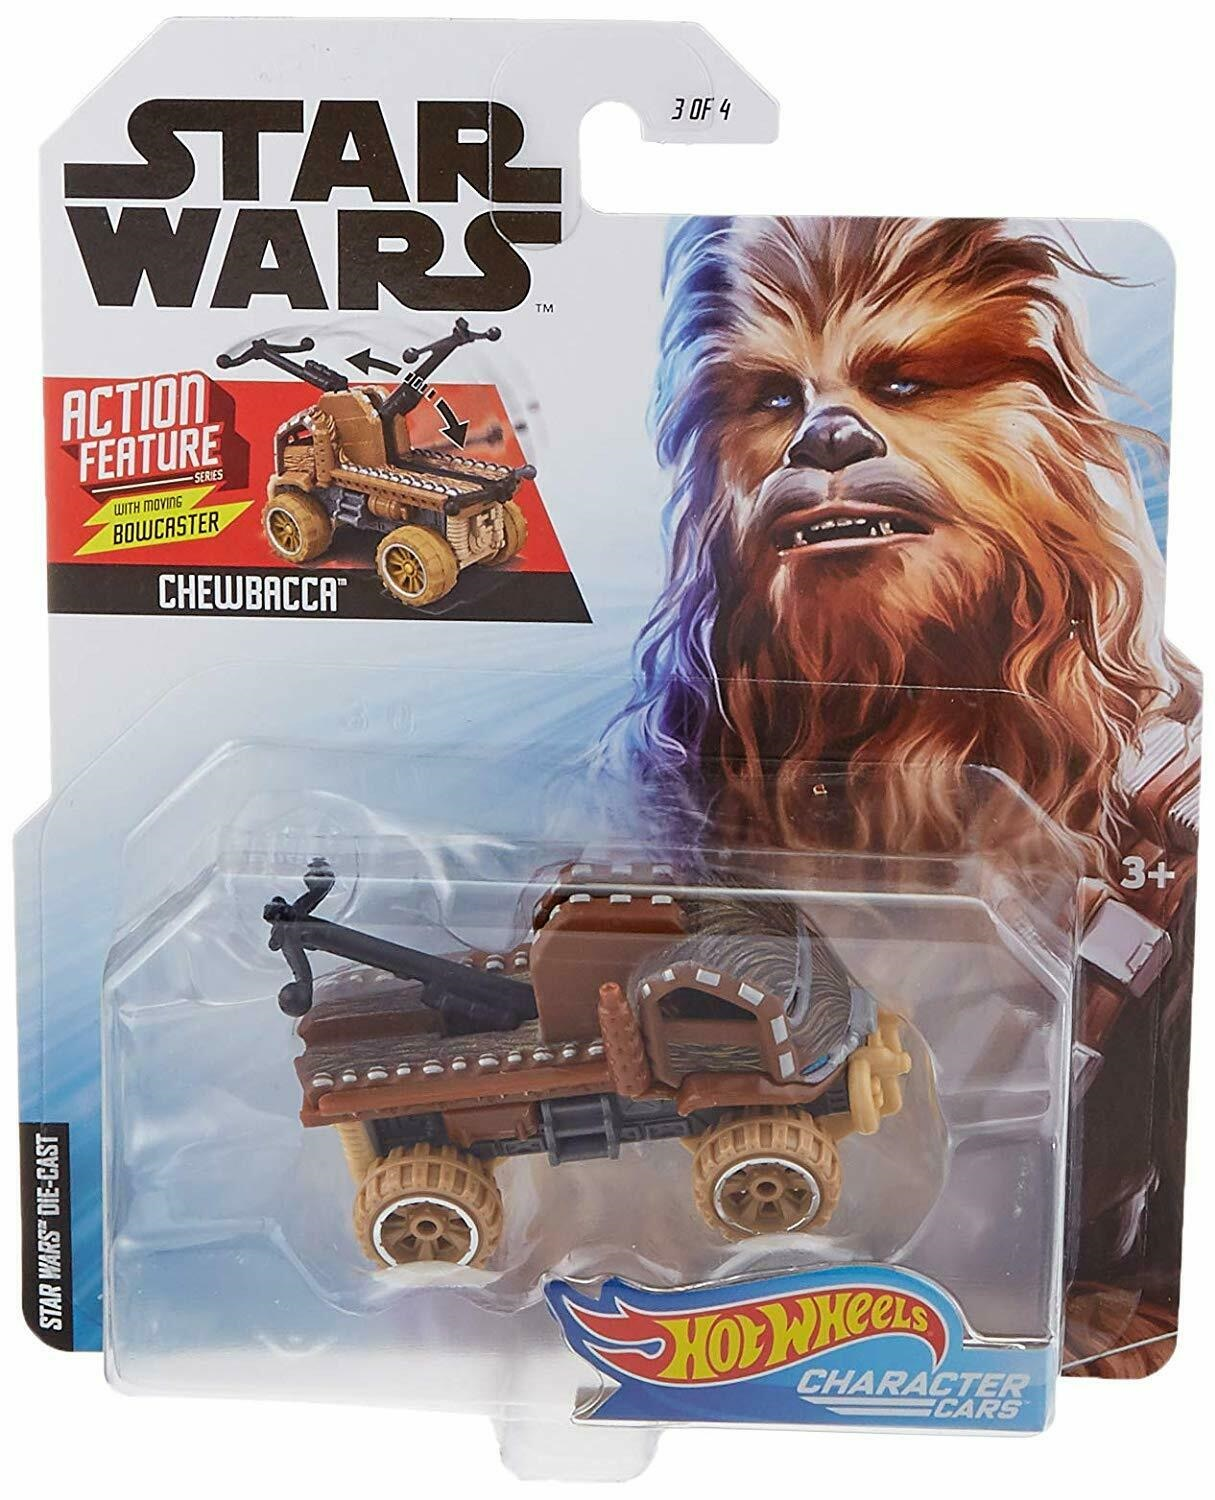 Chewbacca (action feature)